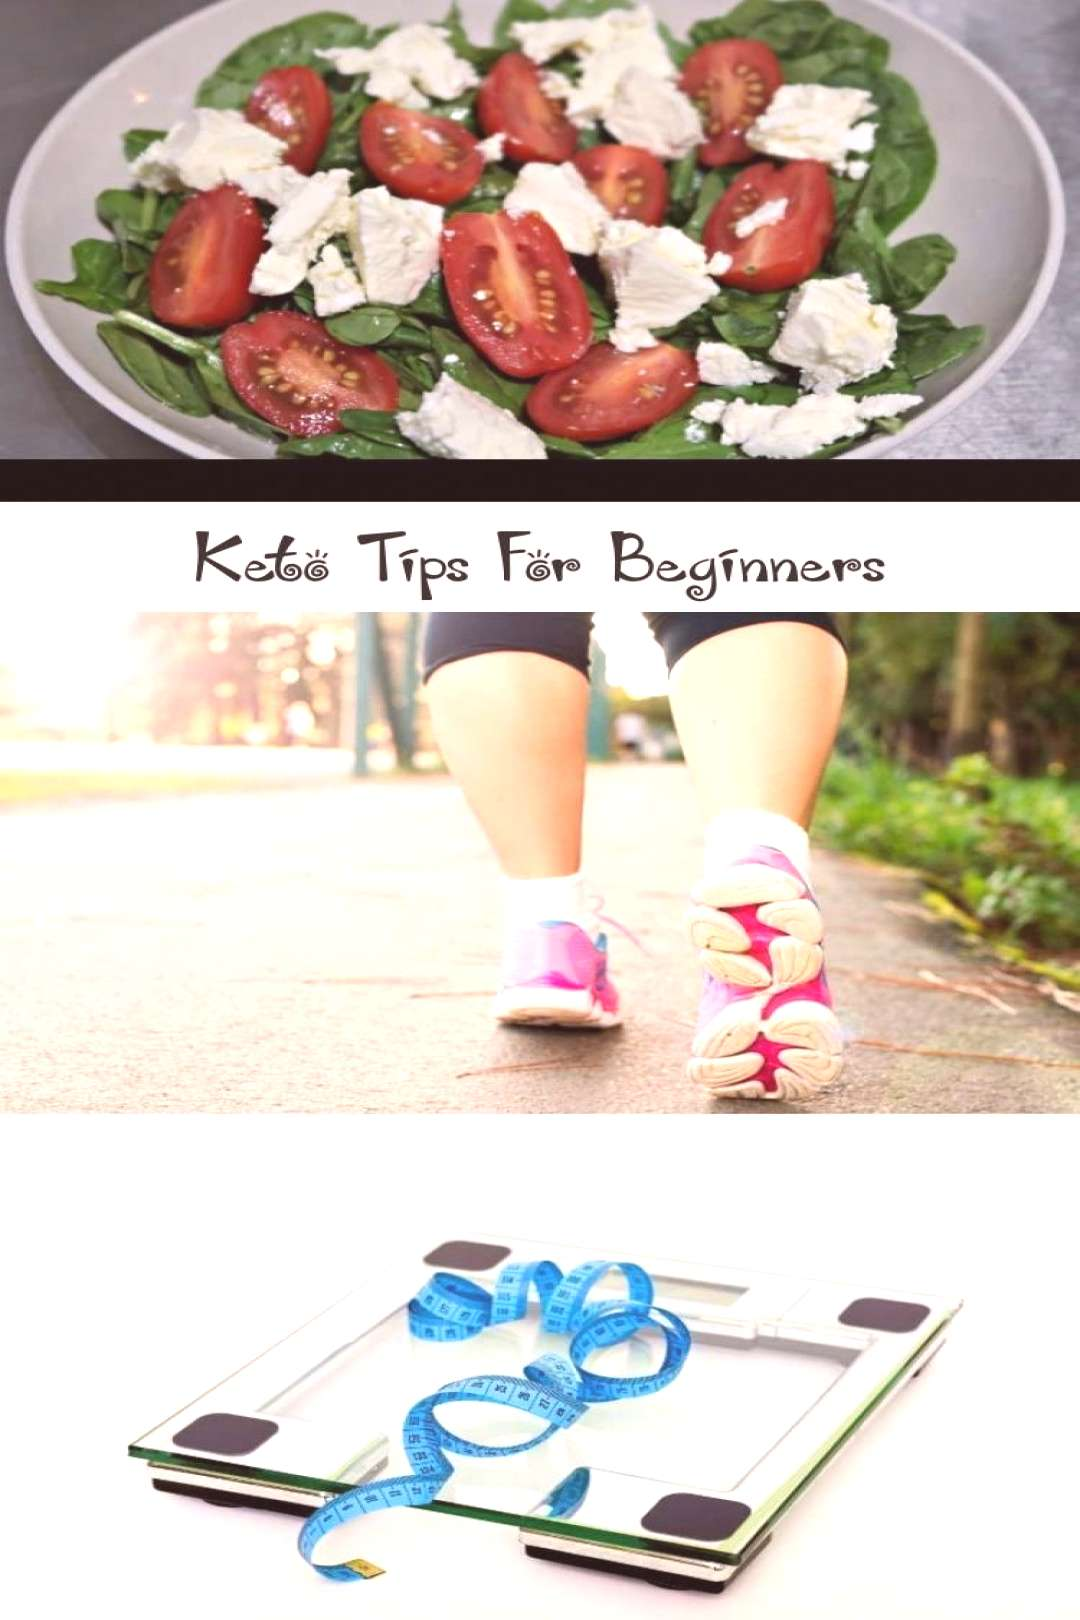 Keto Tips For Beginners - Tips and Tricks for Ketogenic Diet Success with weight... - Keto Tips Fo